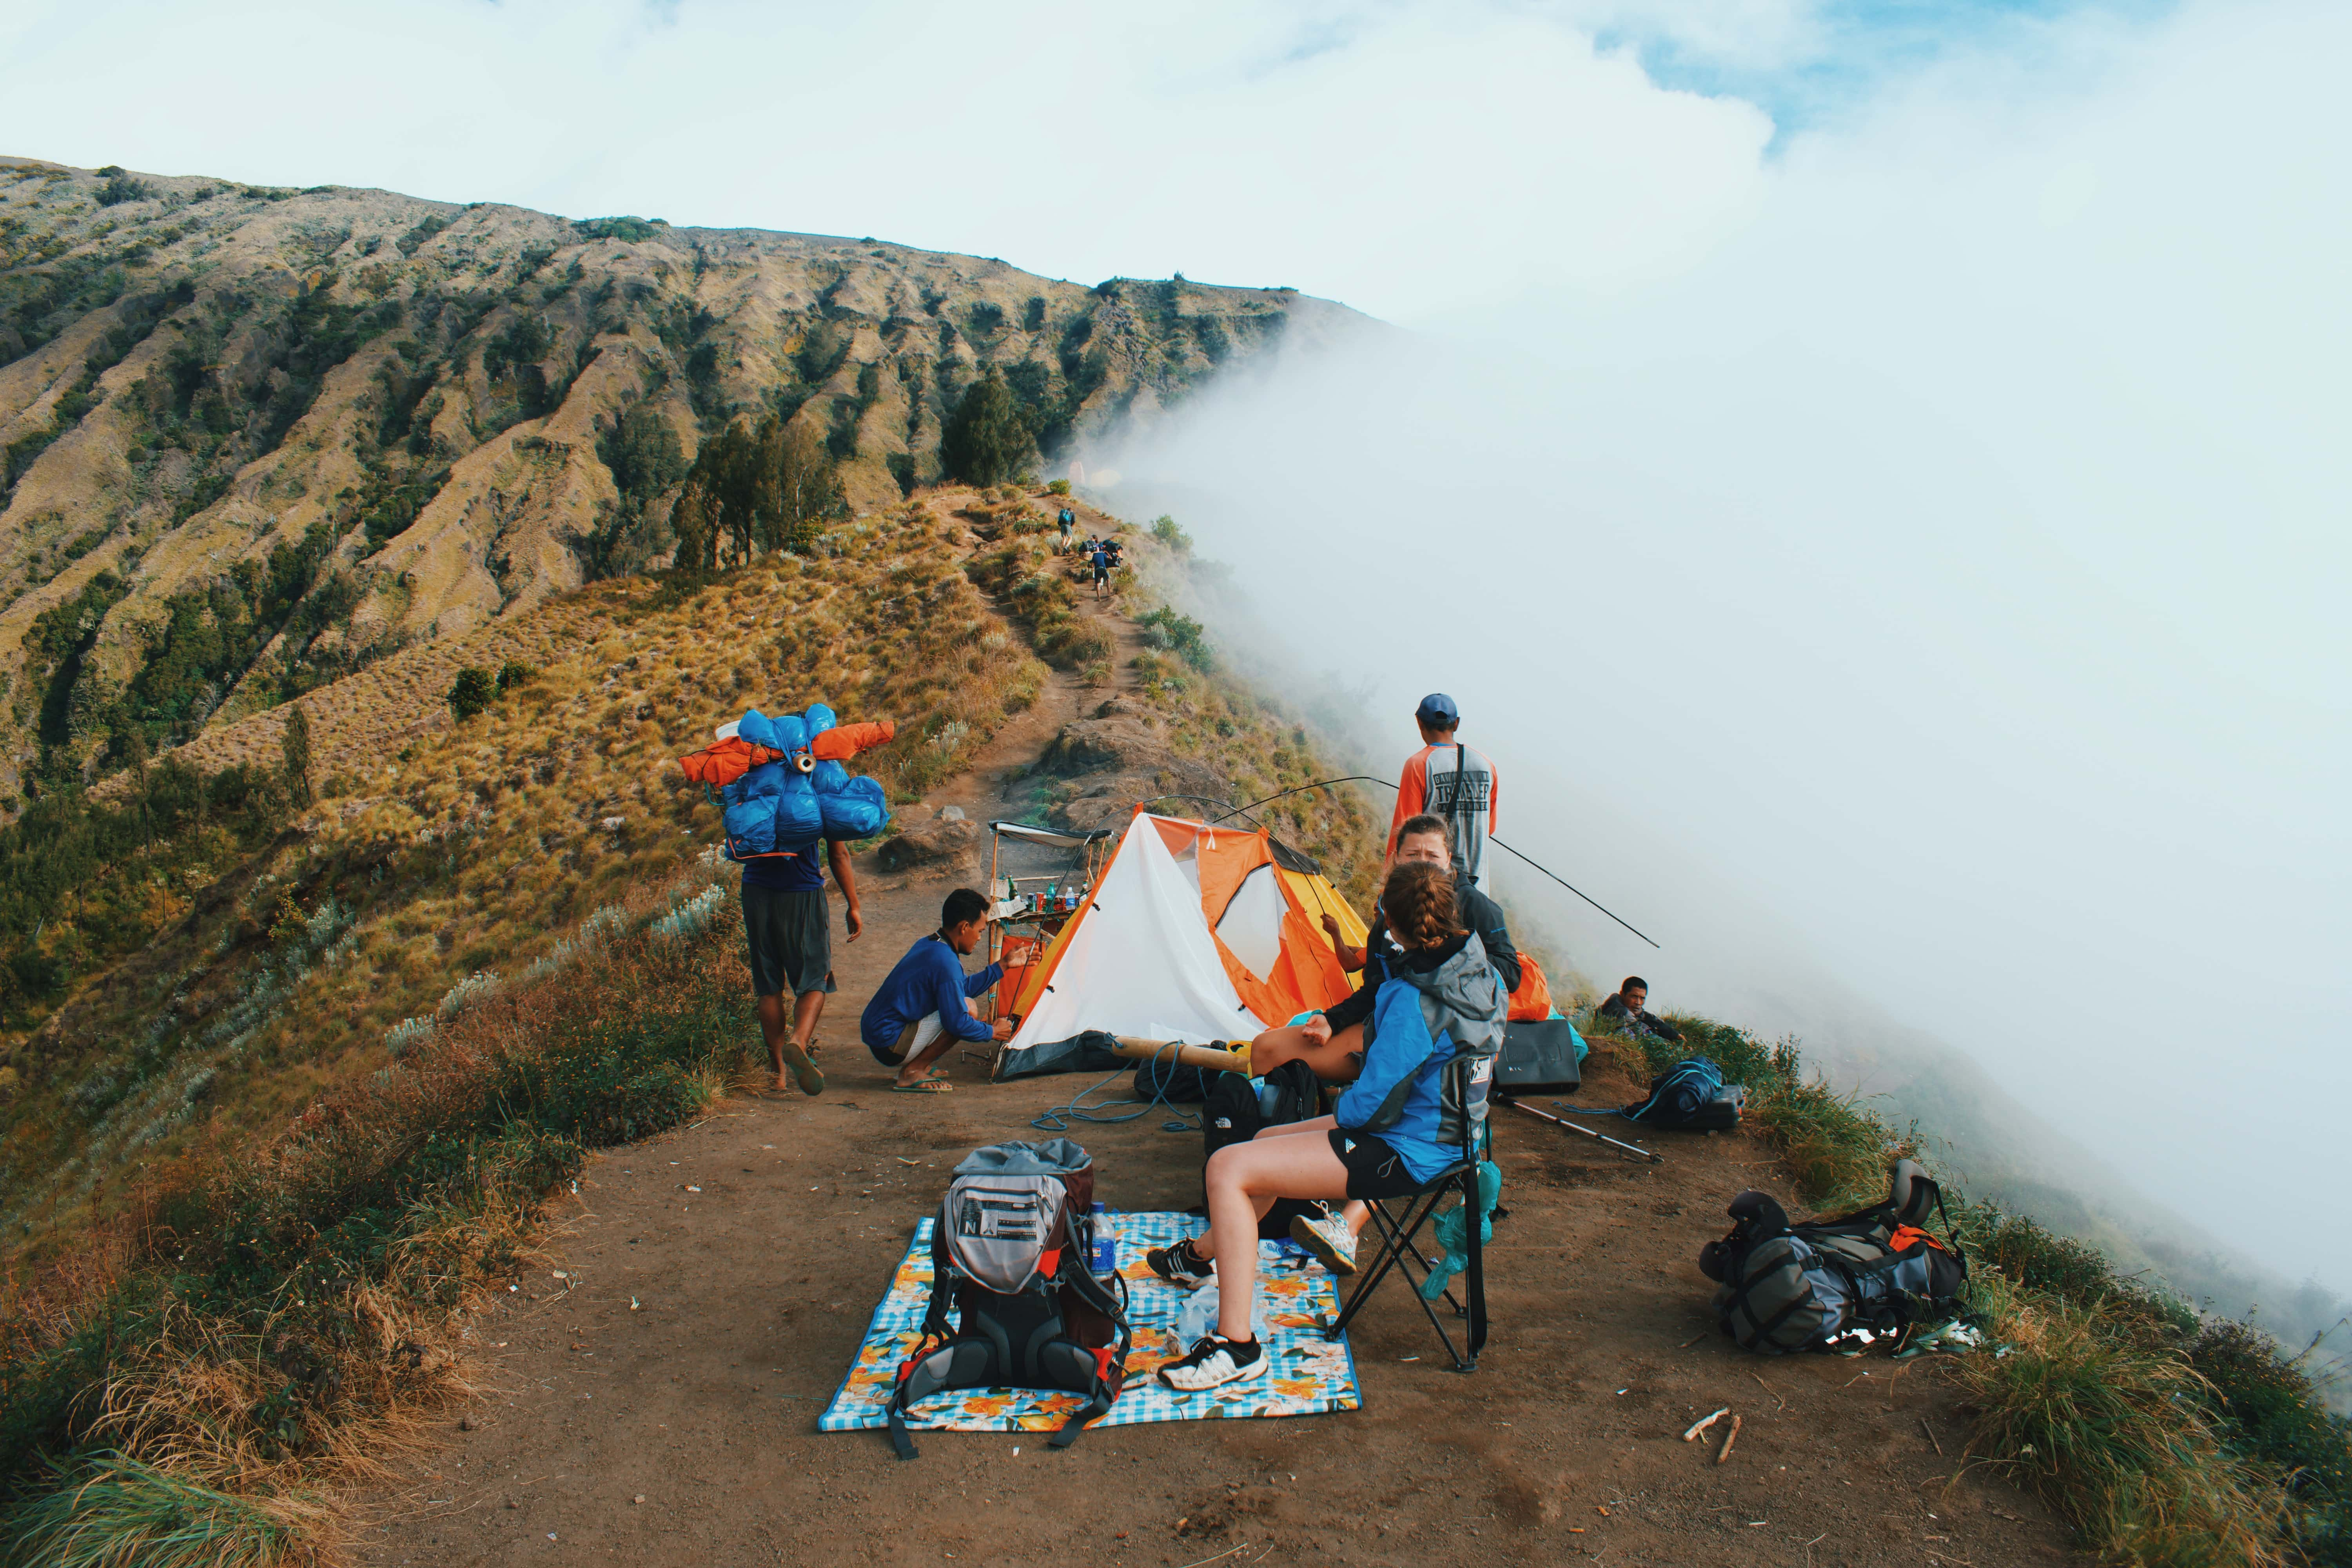 A huge Lombok adventure, Mount Rinjani was definitely a challenge to remember.